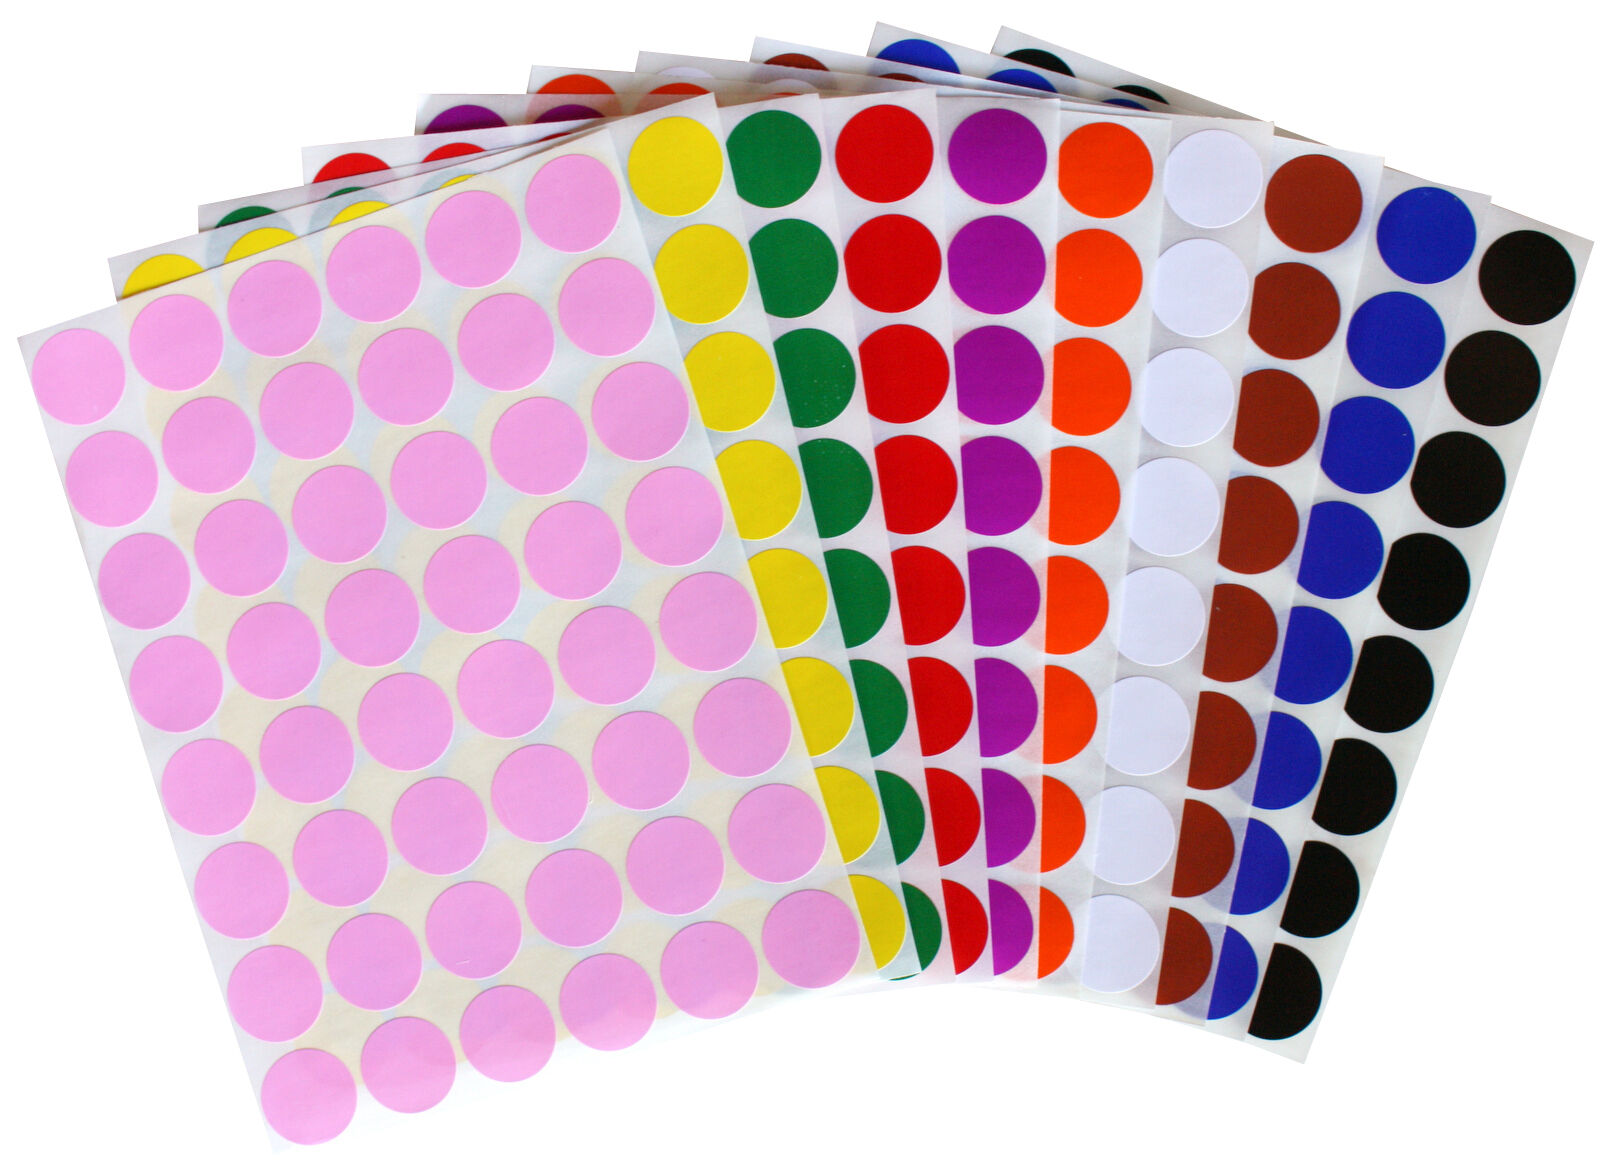 Details about Color Coding ~5/8 Inch 17mm Small Dots Stickers Round  Circular Labels 336 Pack